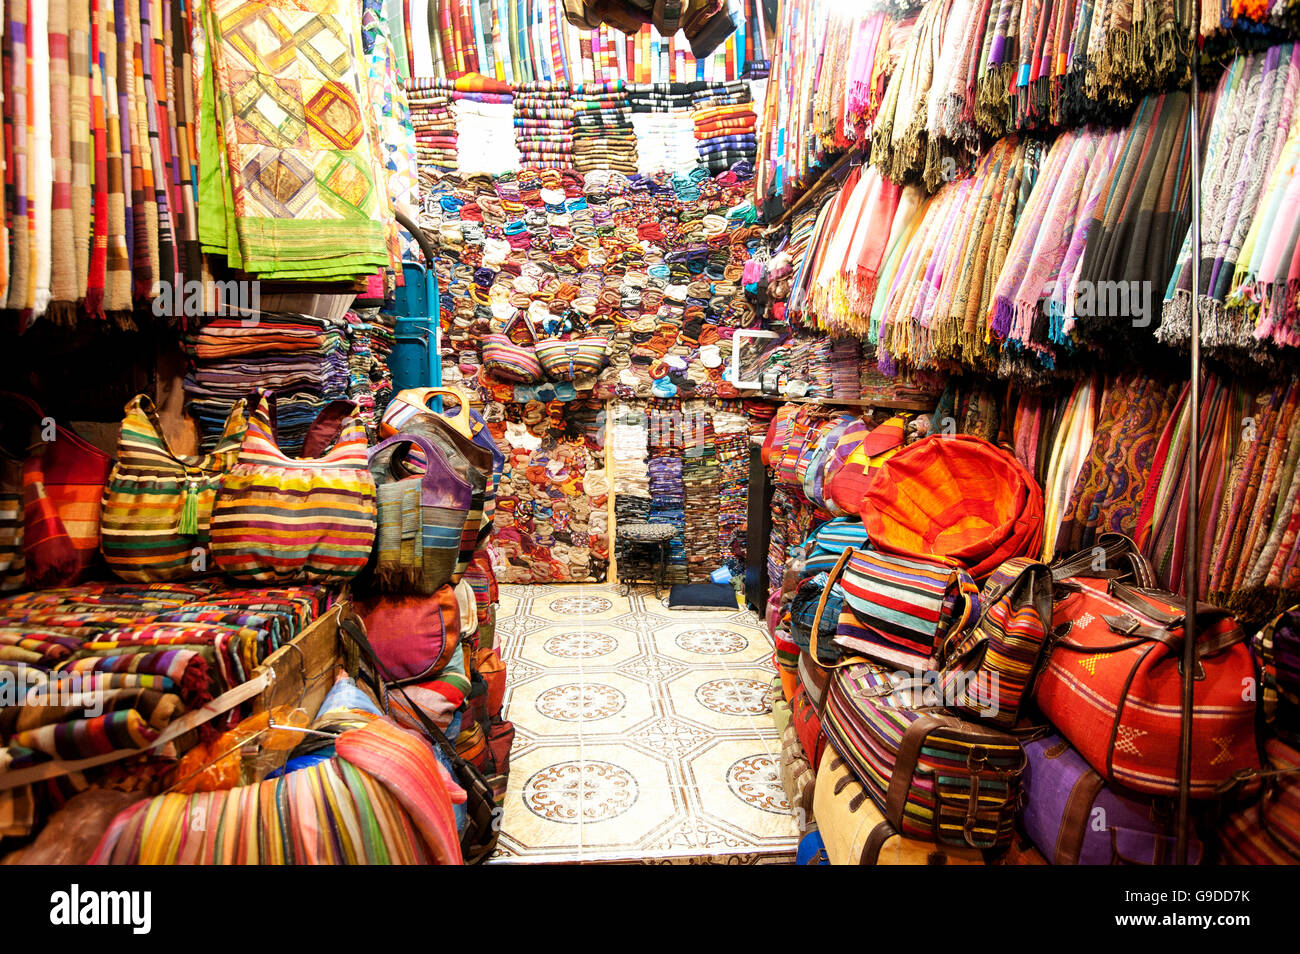 bag and blanket shop in the souks or markets marrakech